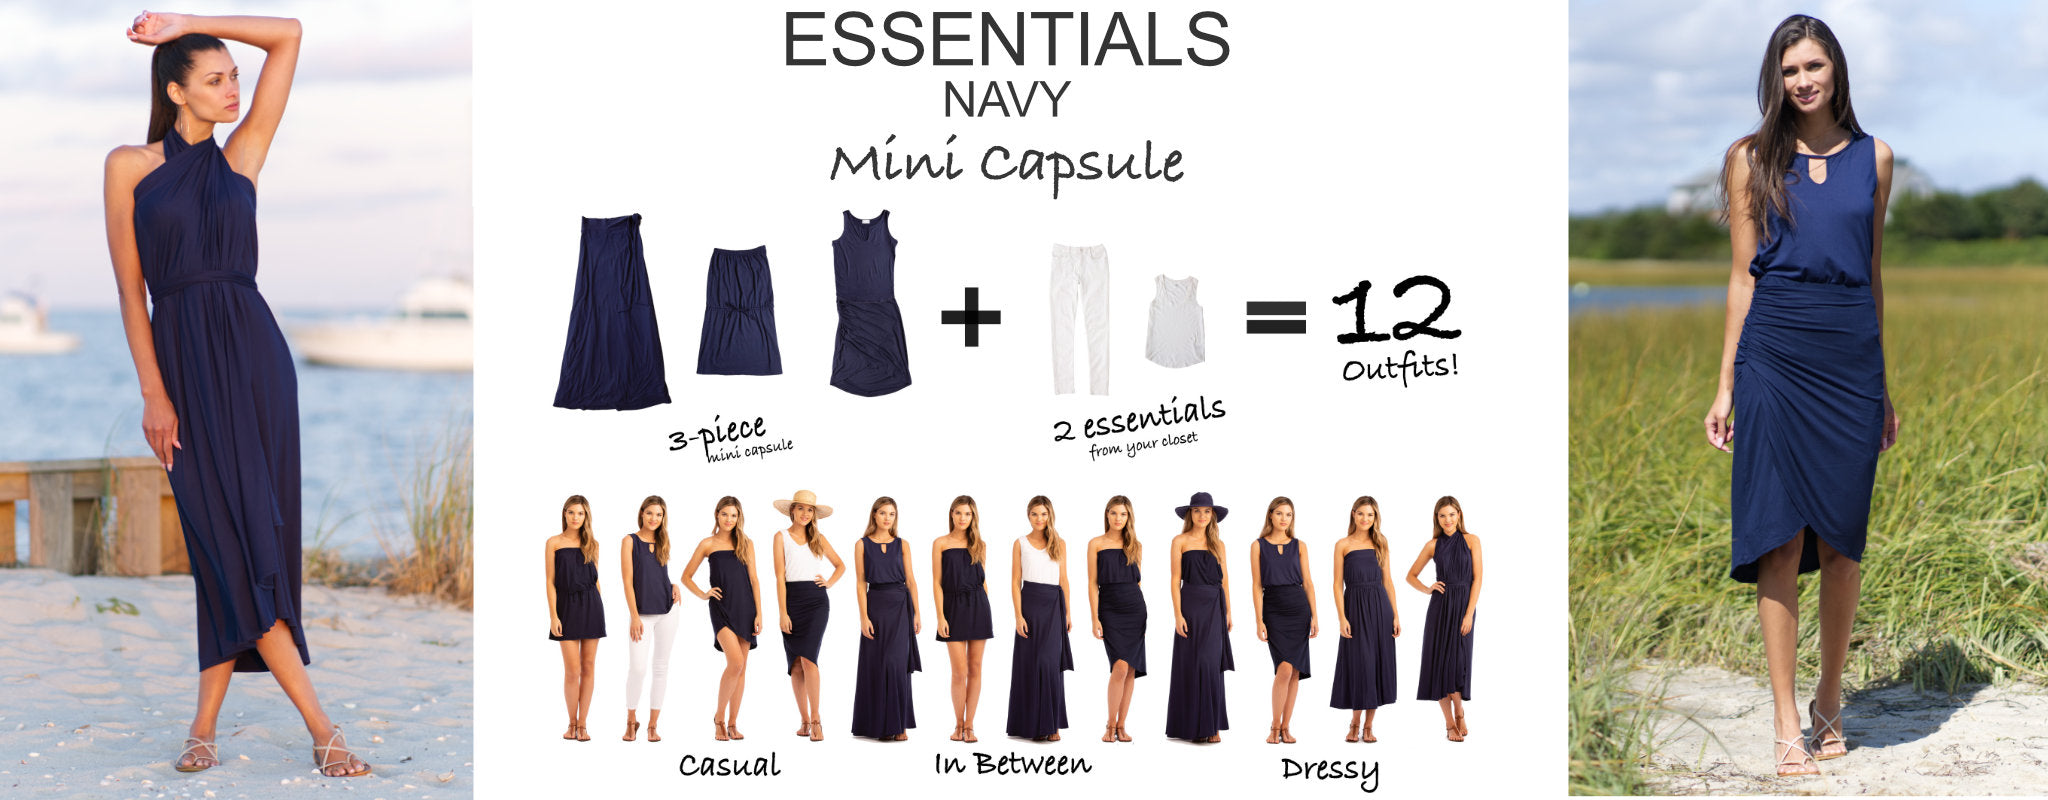 Essentials Mini Capsule Navy